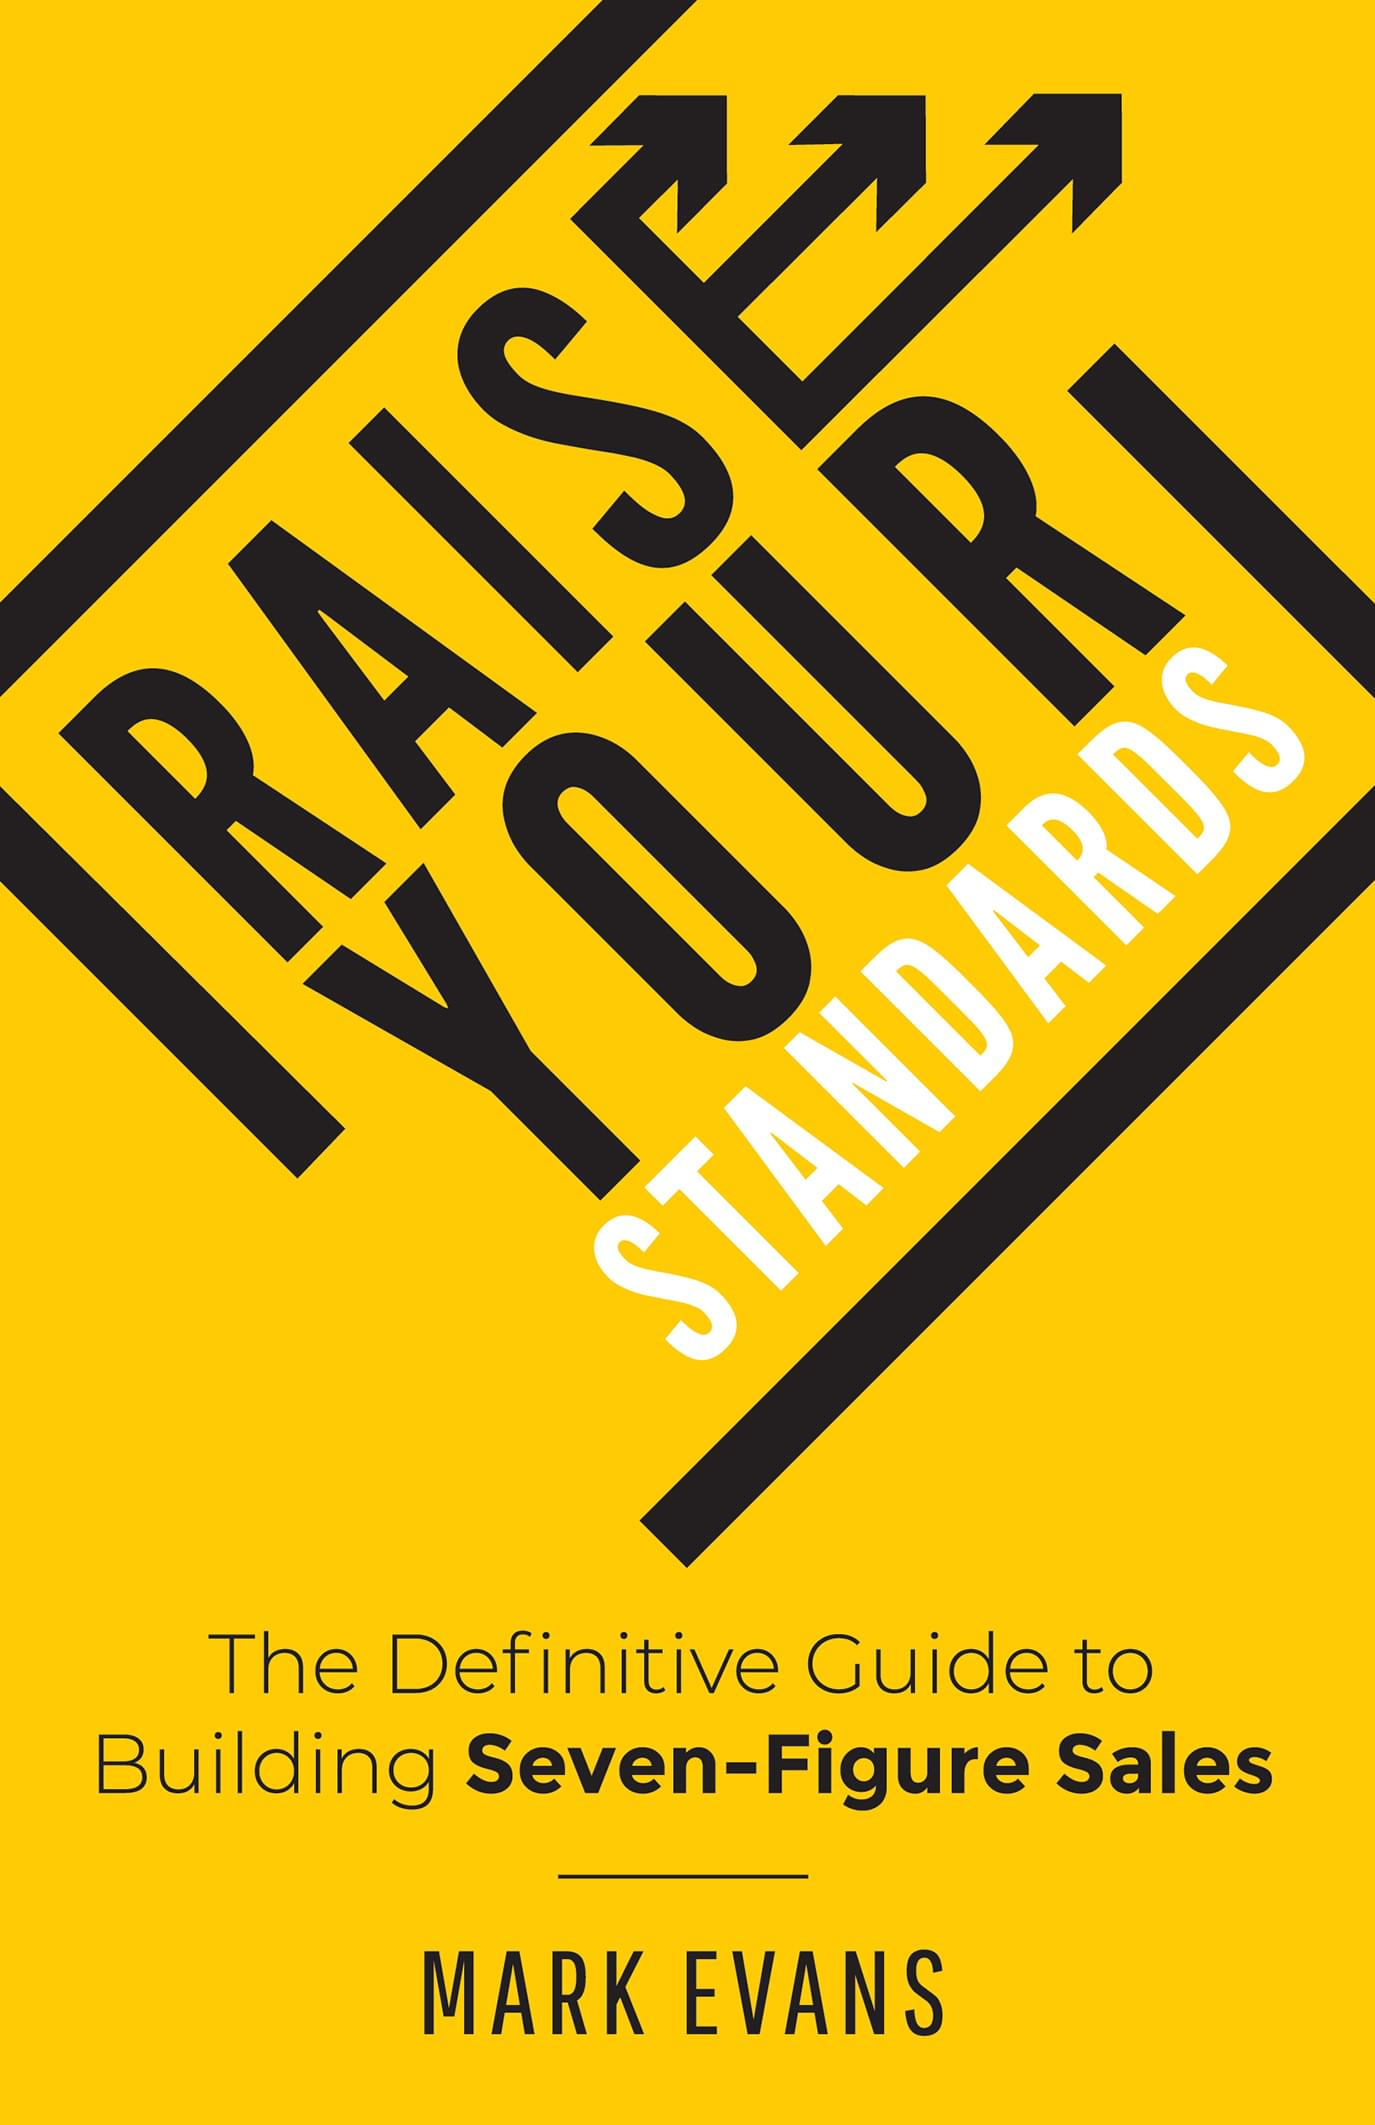 Raise Your Standards by Mark Evans